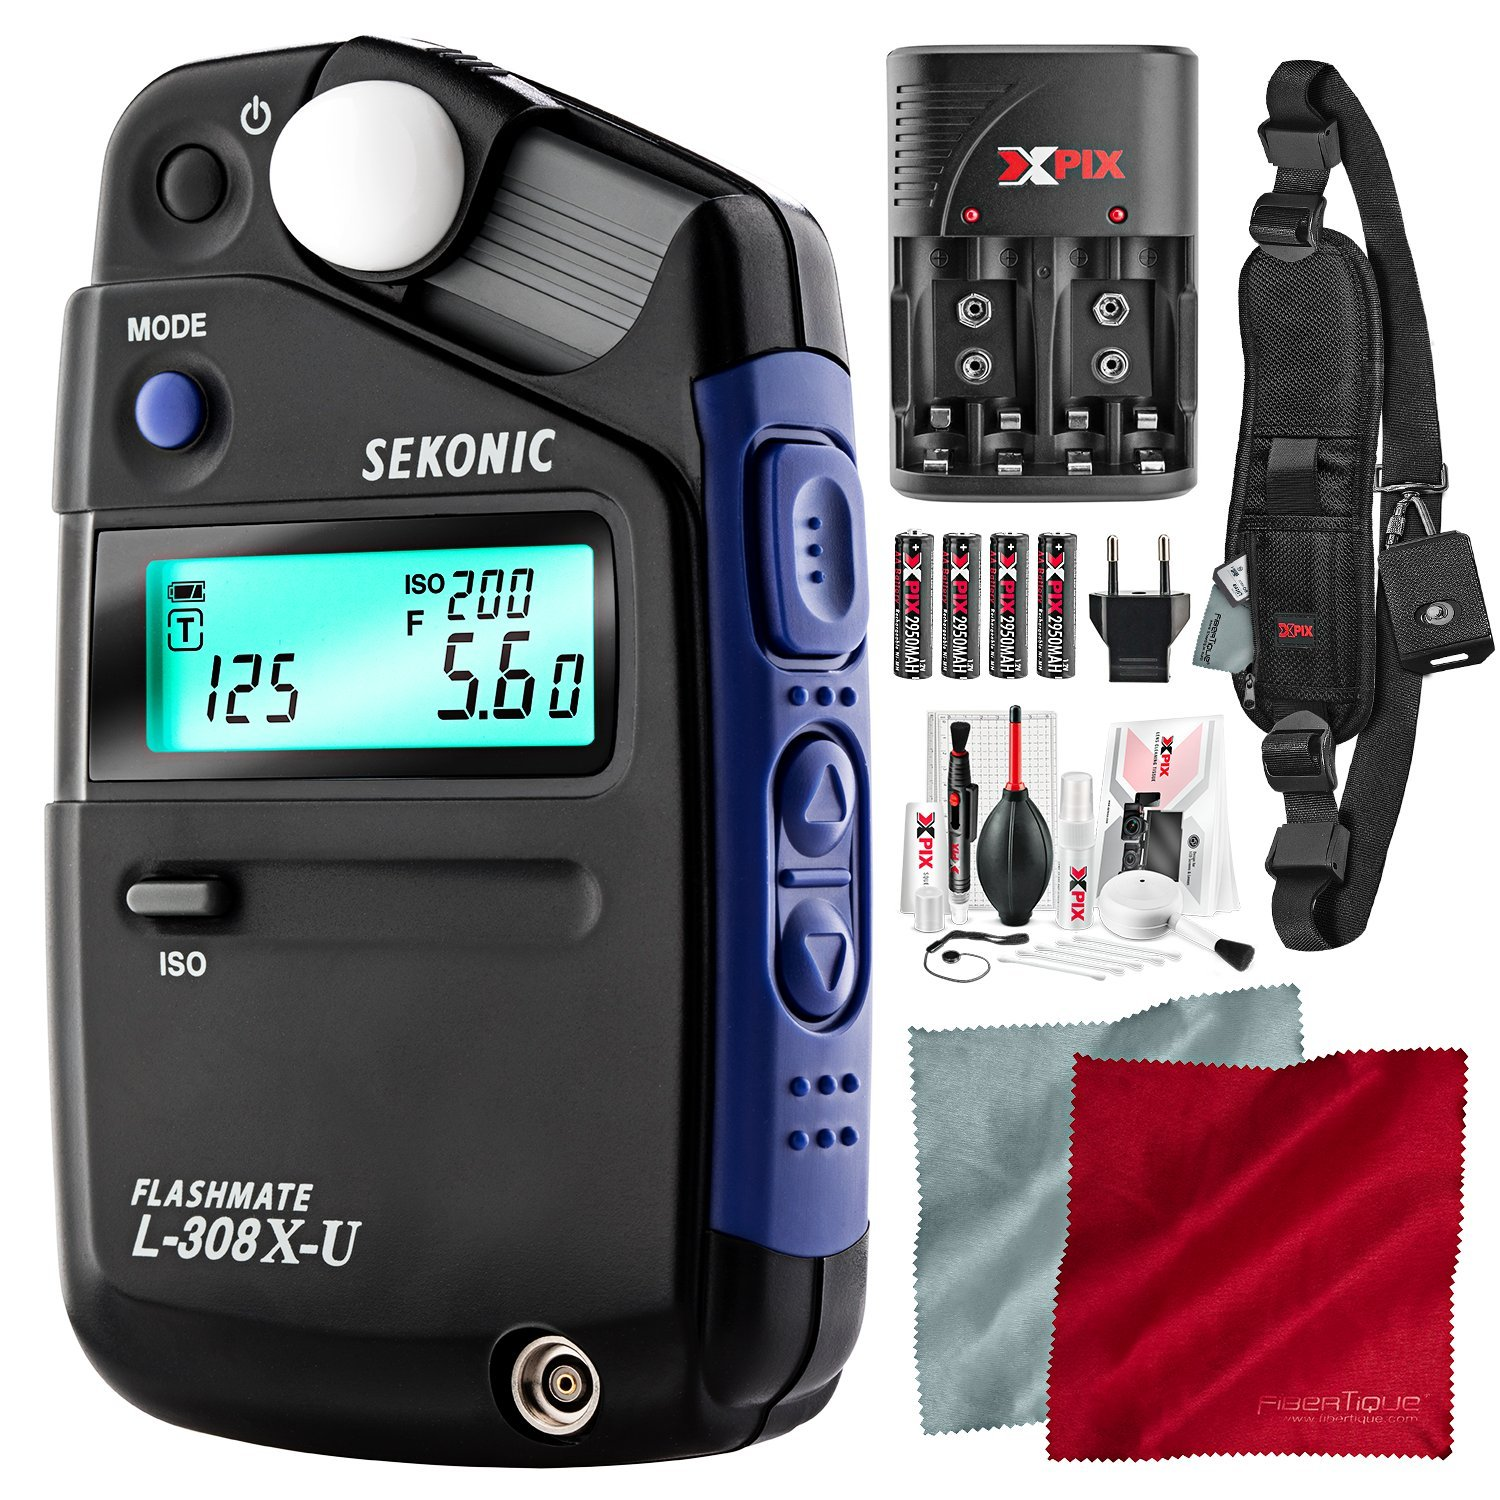 Sekonic L-308X-U Flashmate Light Meter with Xpix Professional Camera Strap, Camera Lens Cleaning Kit, and Deluxe Bundle